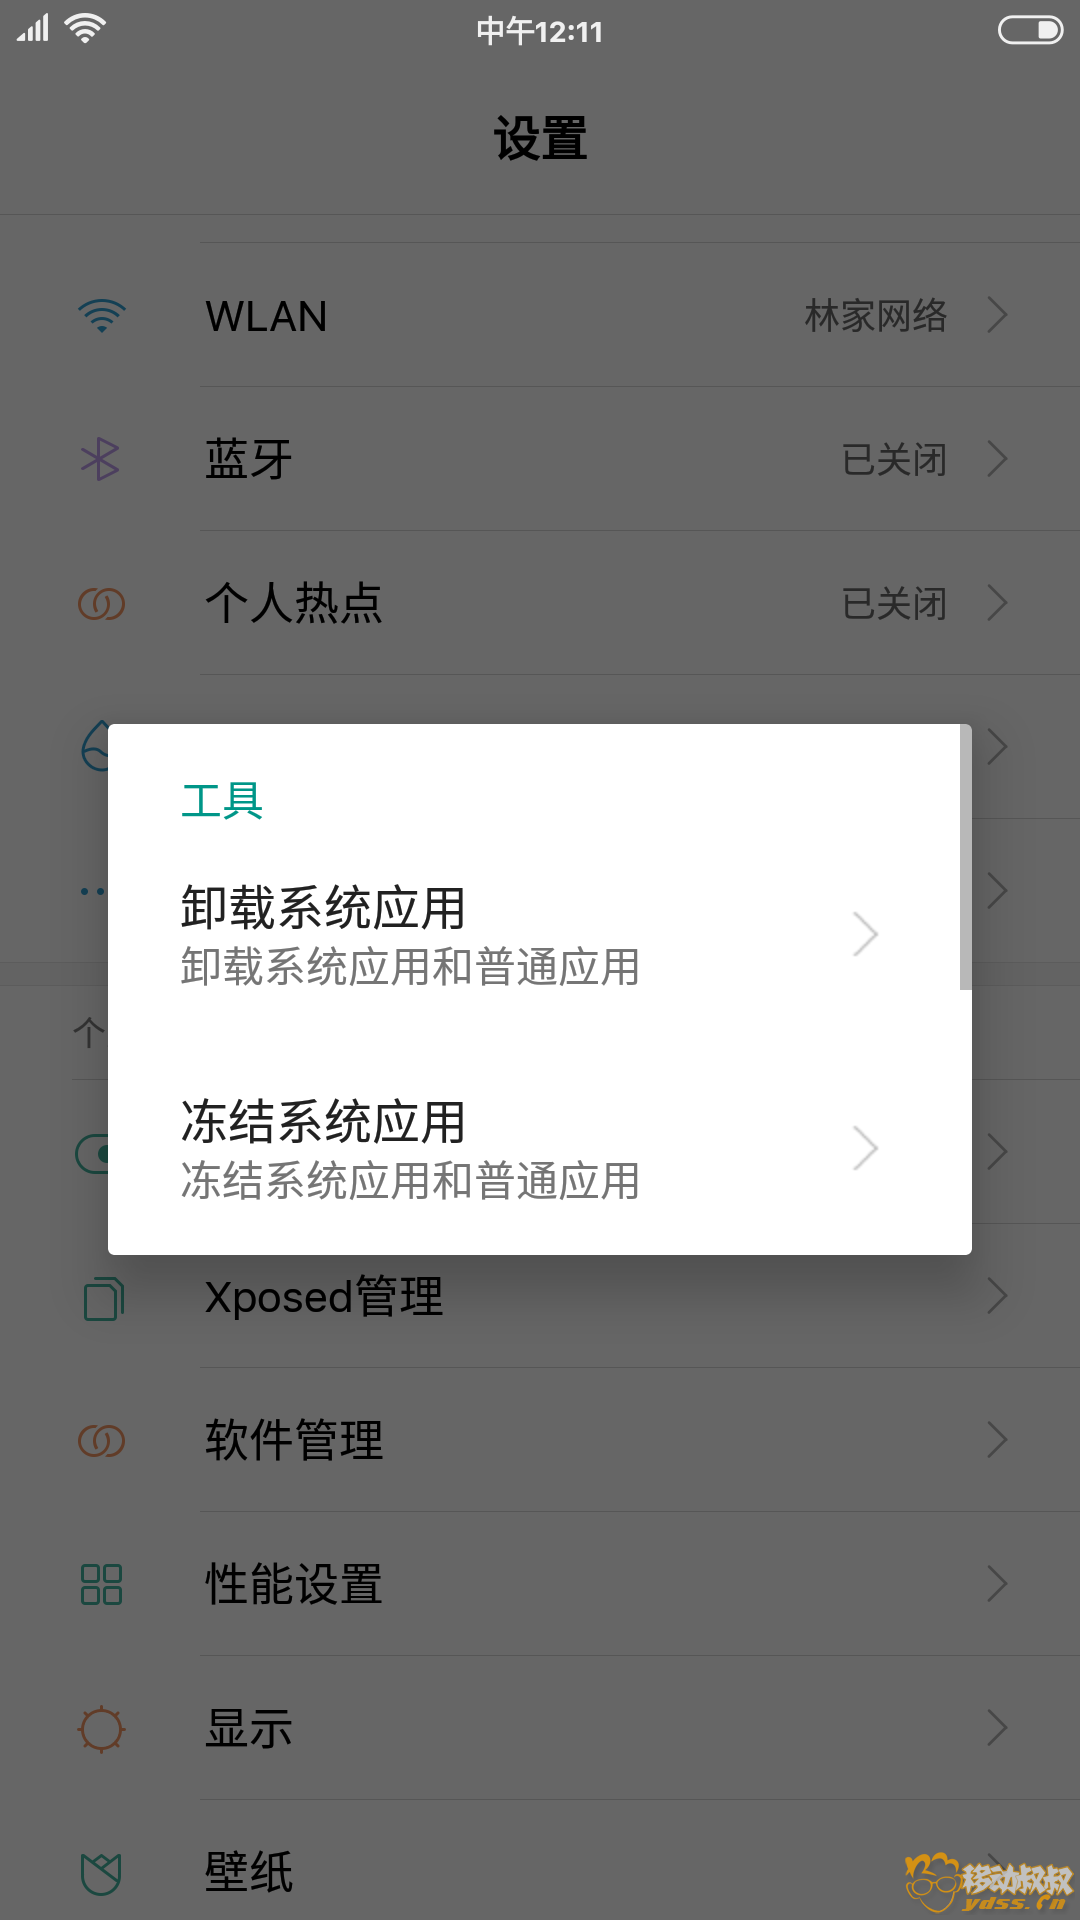 Screenshot_2018-08-10-12-11-20-774_com.zhanhong.tools.png